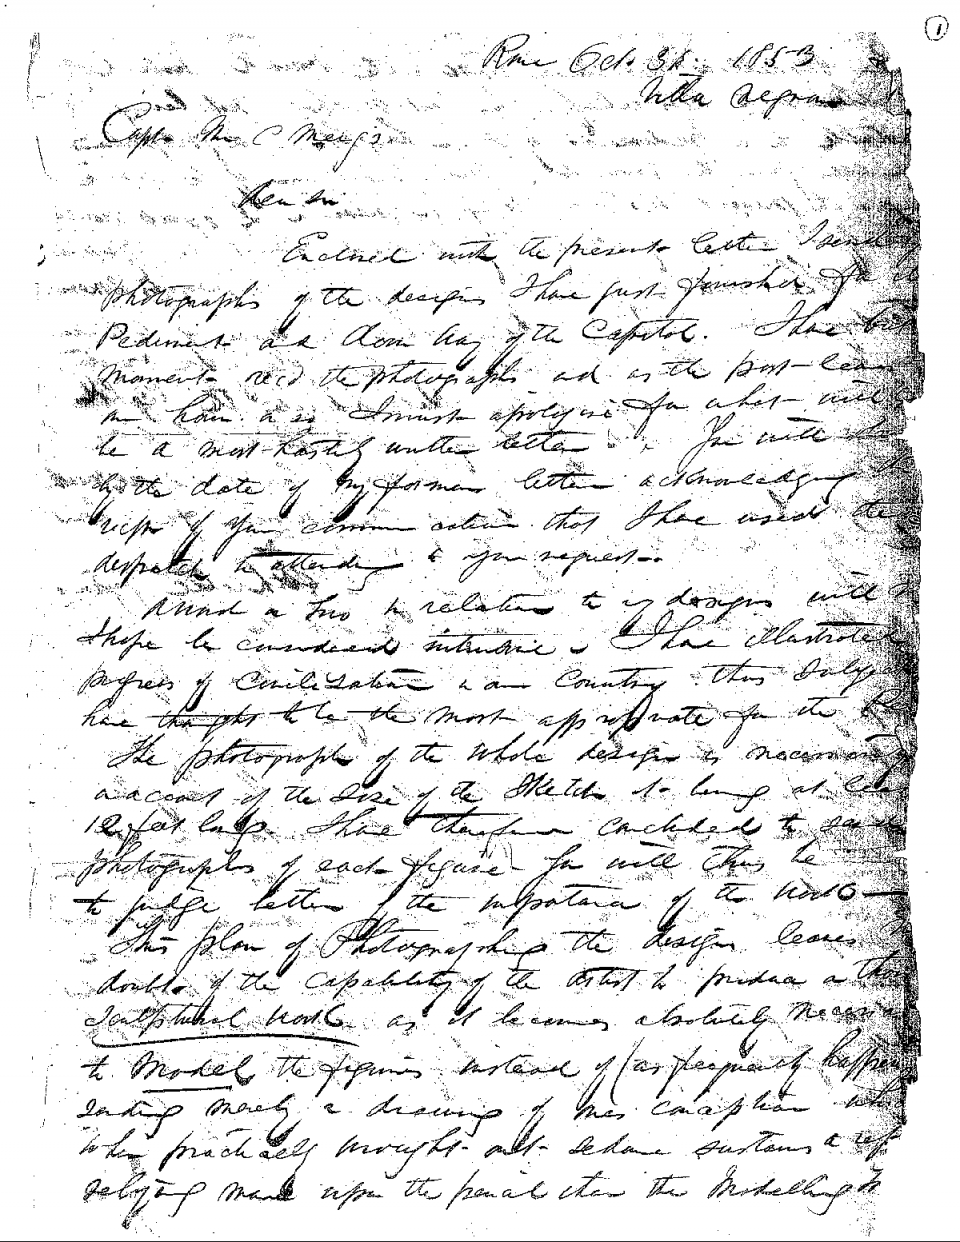 First page of the letter Thomas Crawford wrote to Captain Montgomery Meigs about the pediment.